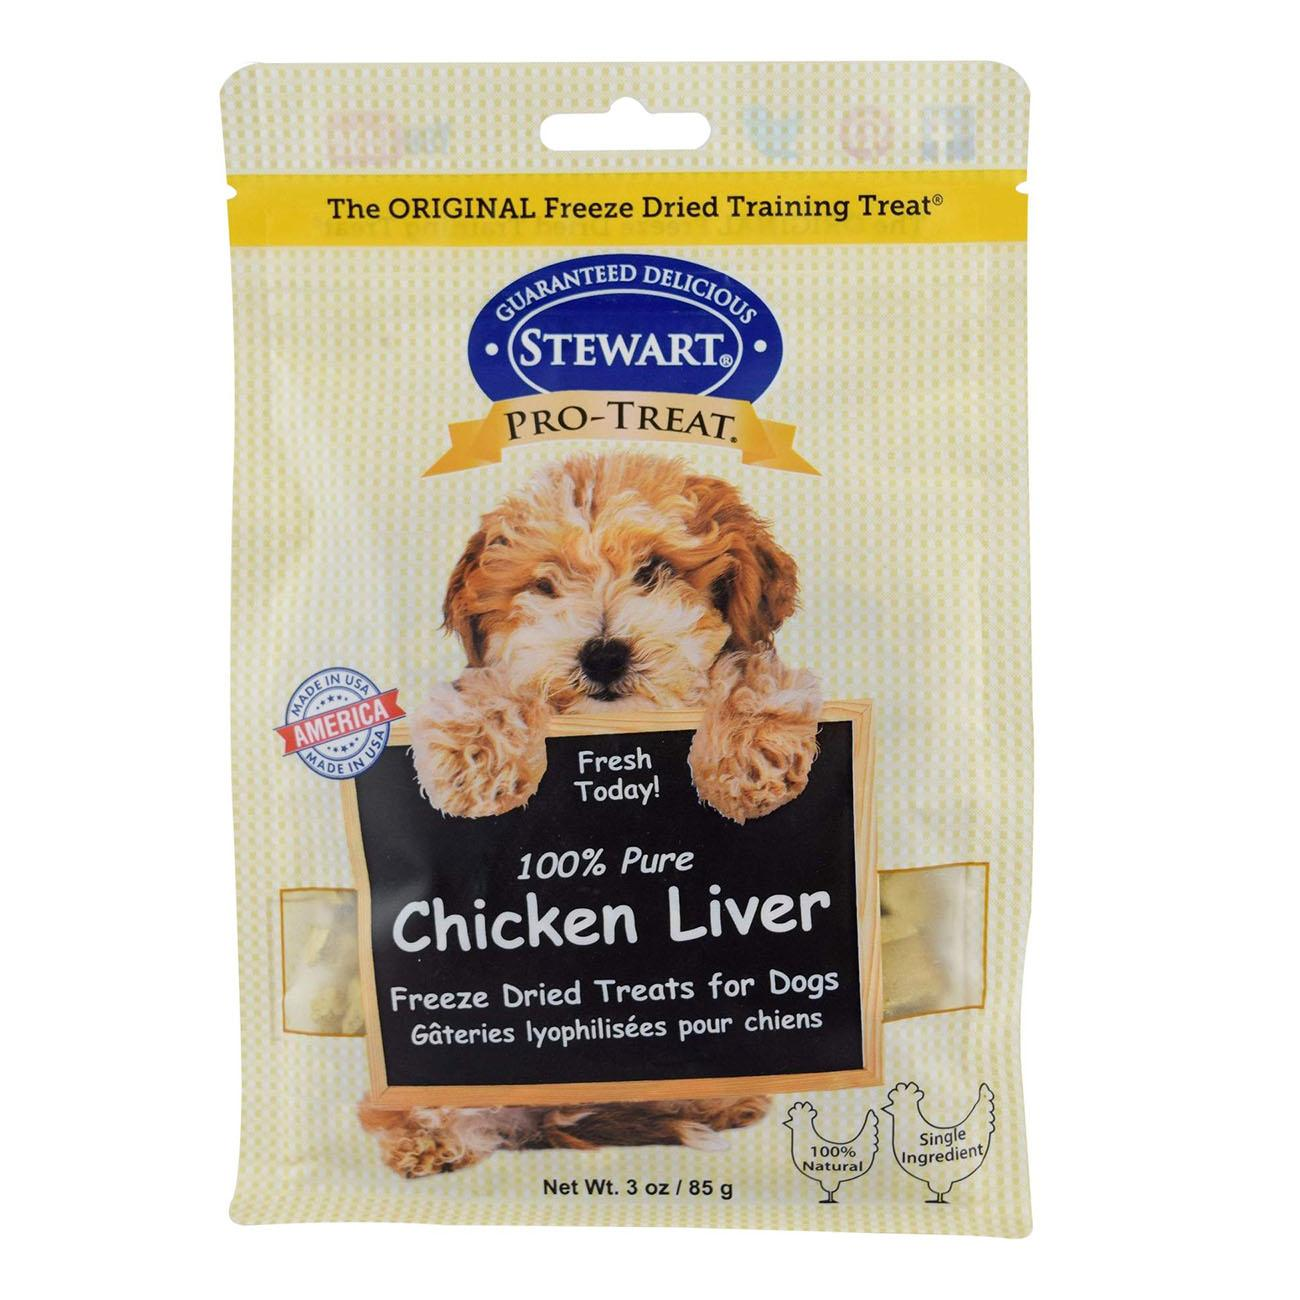 Stewart Pro-Treat Chicken Liver Dog Treat Pouch